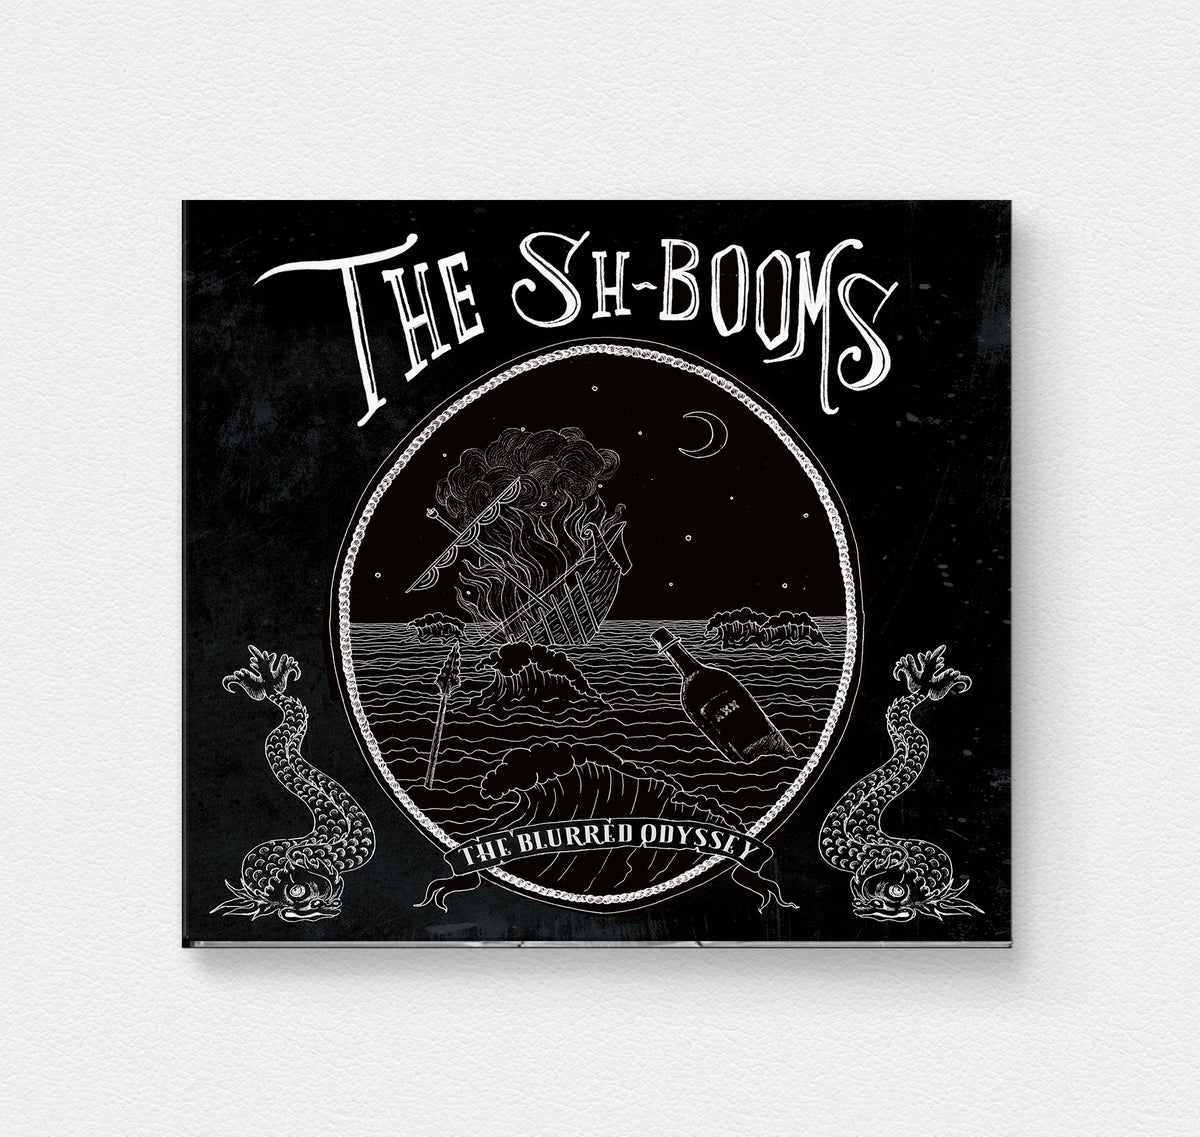 Image of The Sh-Booms 'The Blurred Odyssey' CD Digipak